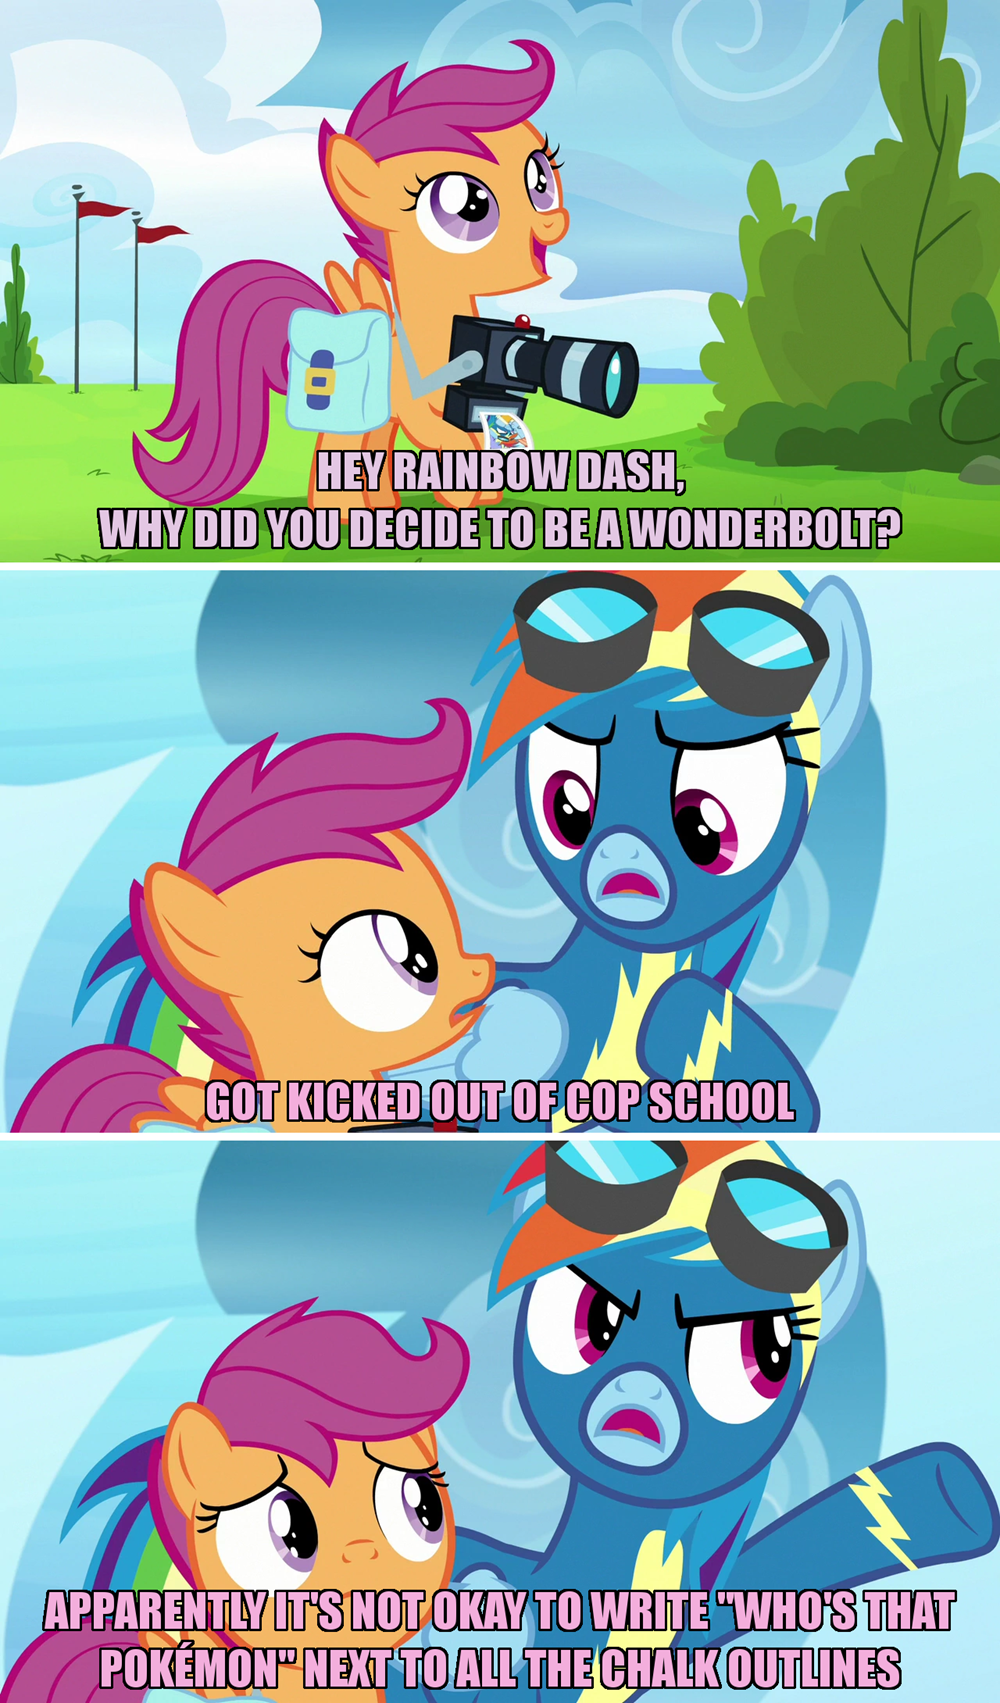 Career Choices My Little Brony My Little Pony Friendship Is Magic Brony Pokemon Go Don't forget to confirm subscription in your email. little pony friendship is magic brony